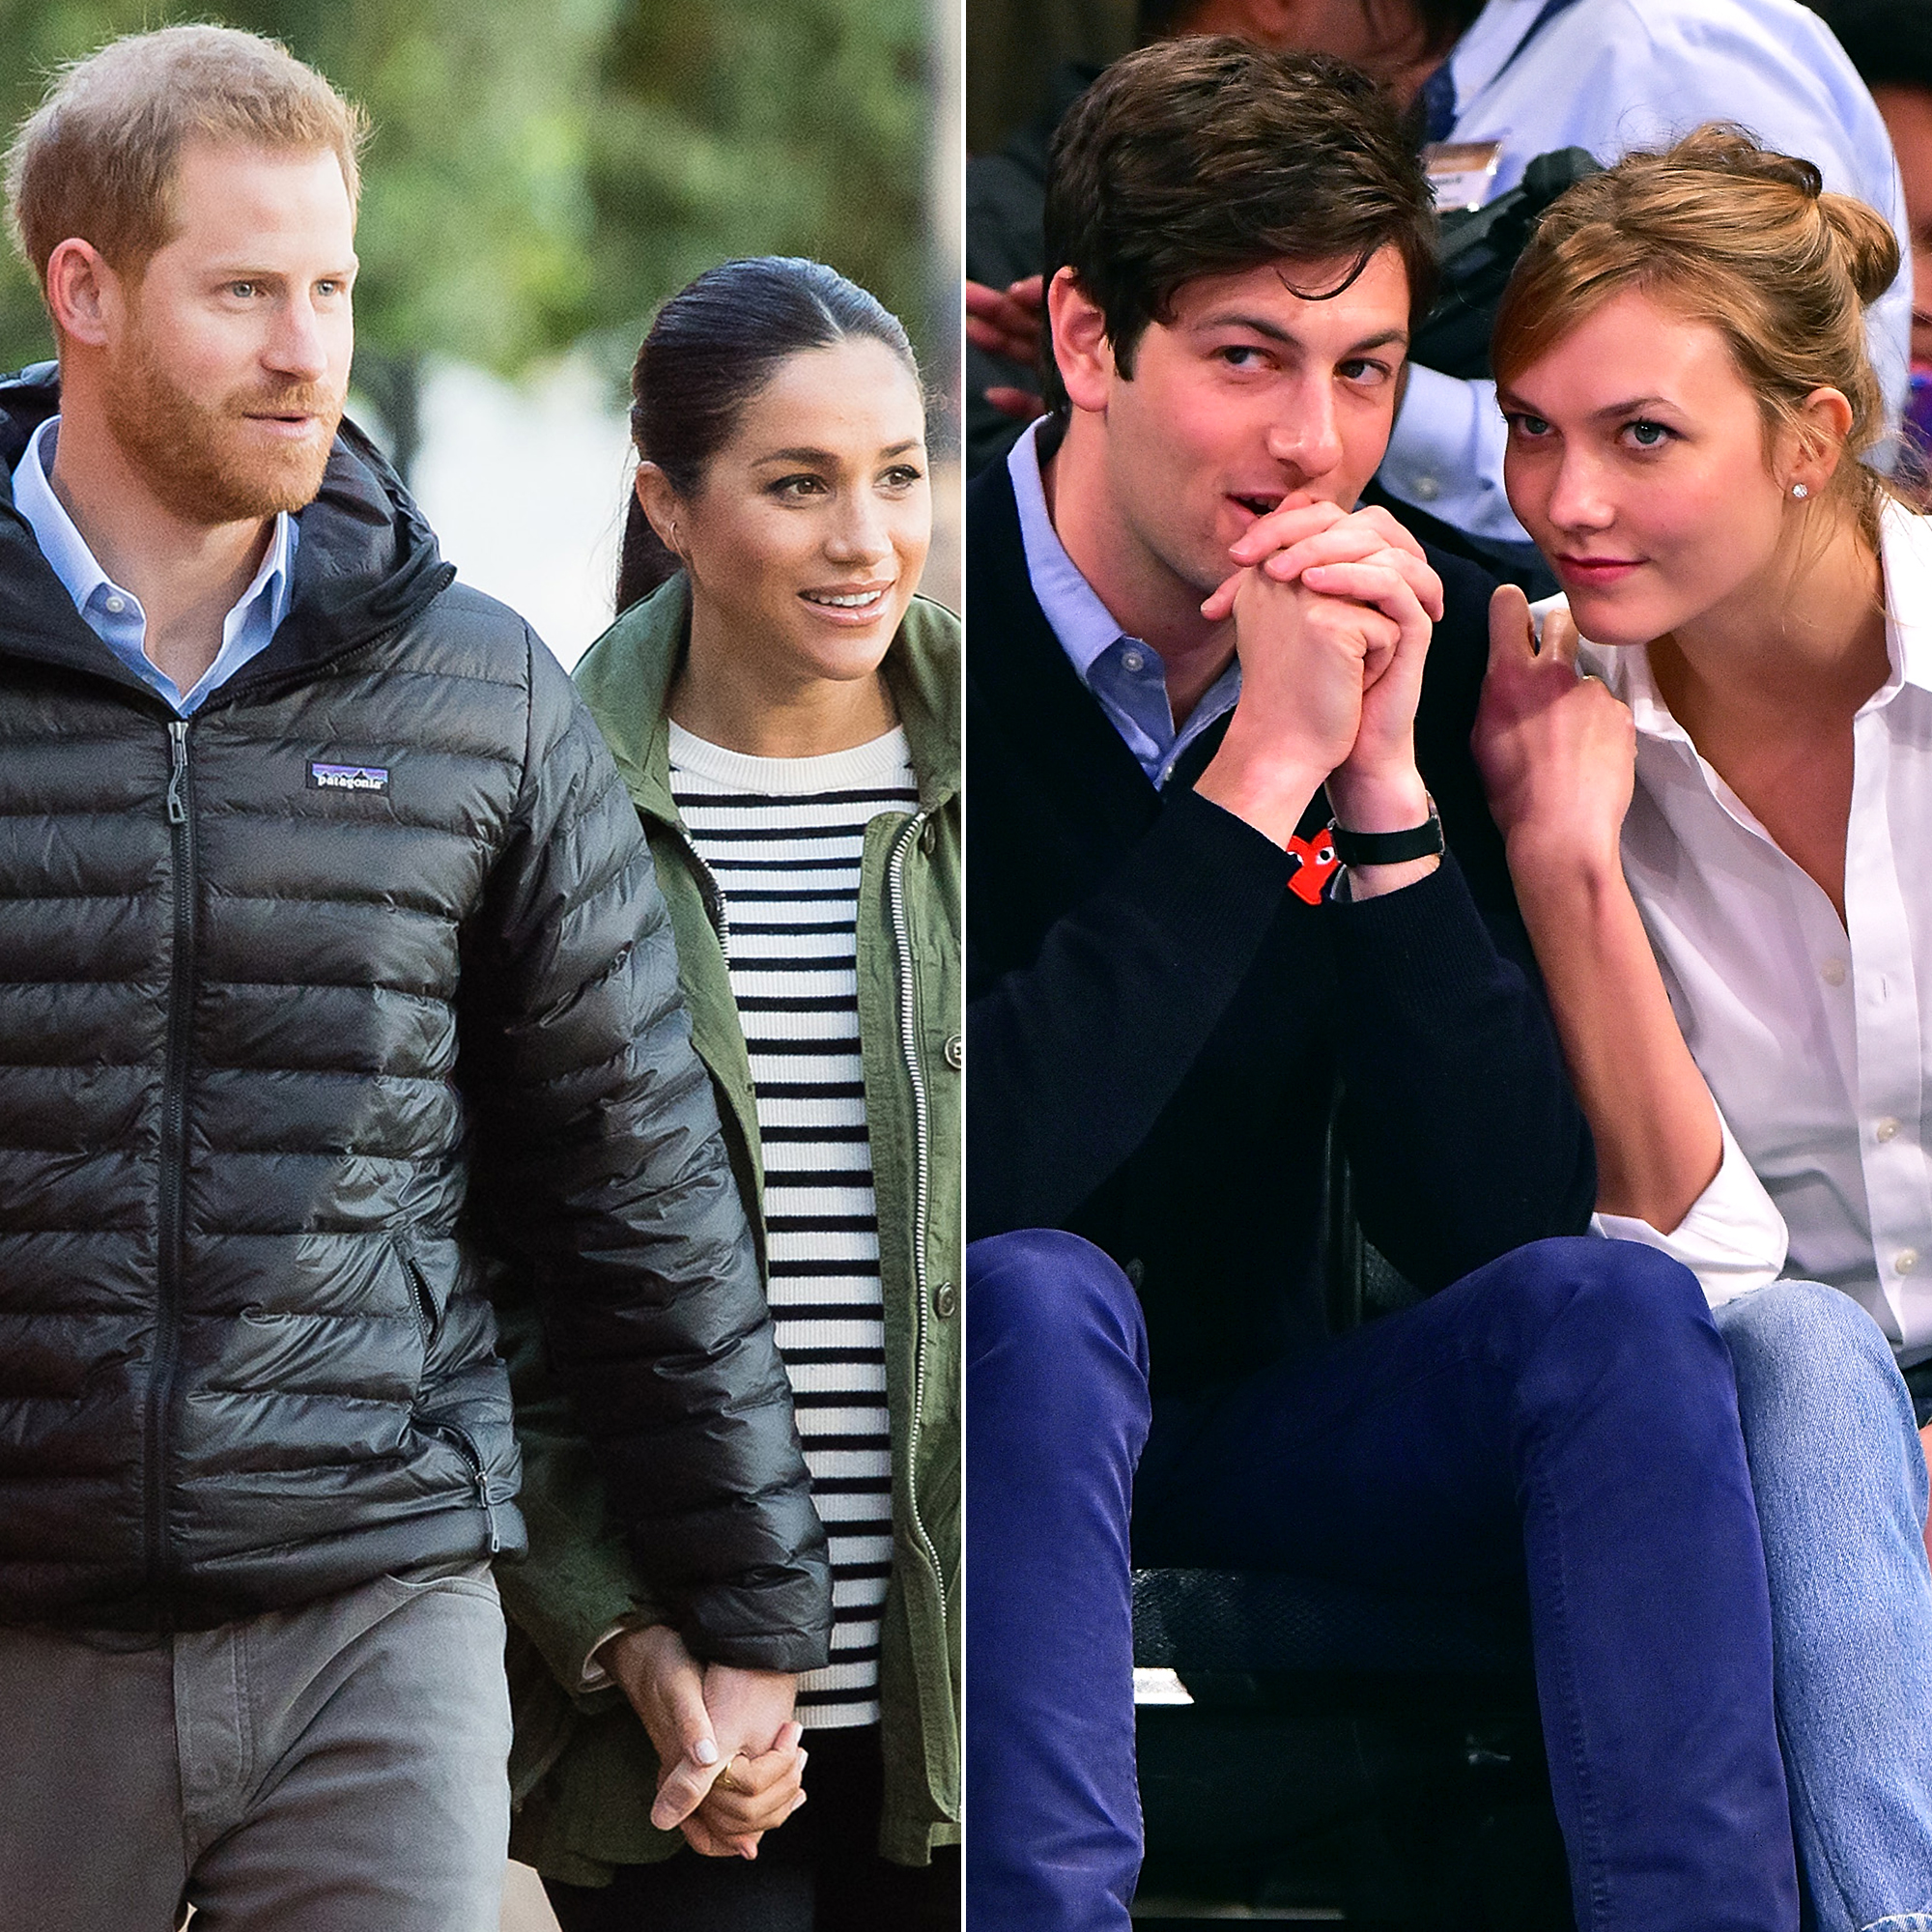 Meghan Markle, Karlie Kloss and More Celebrities Who've Married Into Political Families - Prince Harry, Duke of Sussex with Meghan, Duchess of Sussex and Joshua Kushner with Karlie Kloss.